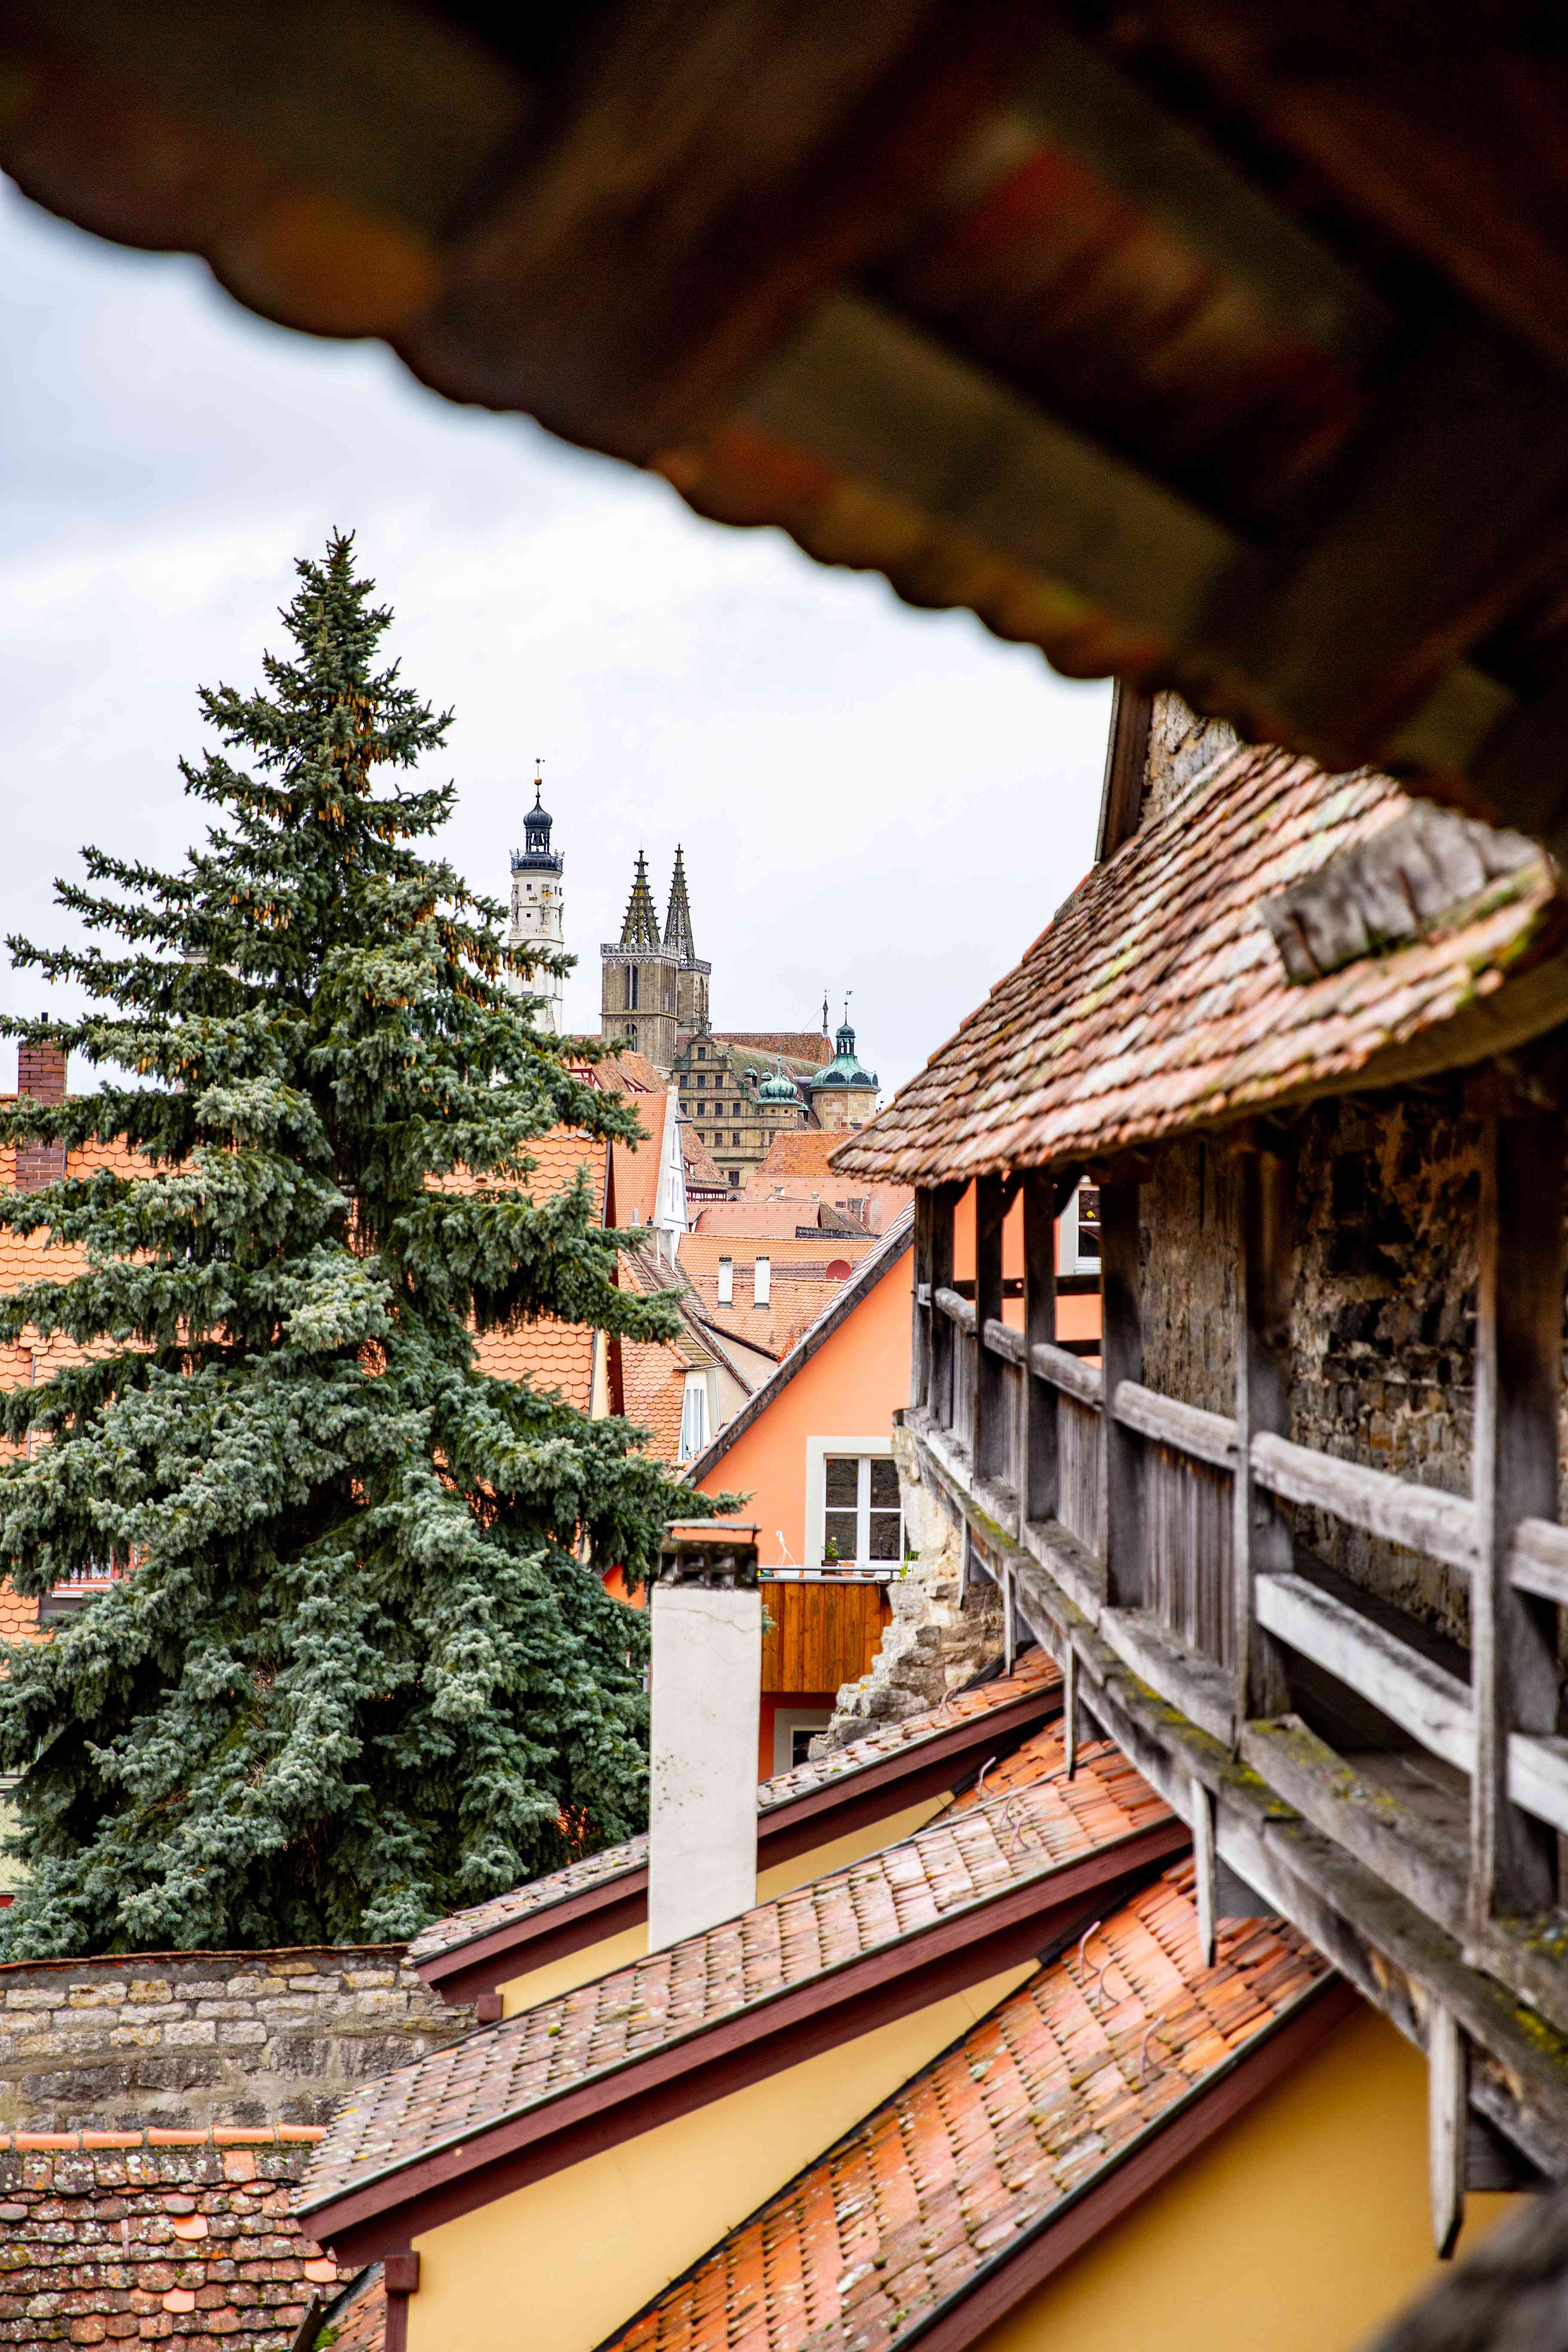 City wall in Rothenburg ob der Tauber, Germany